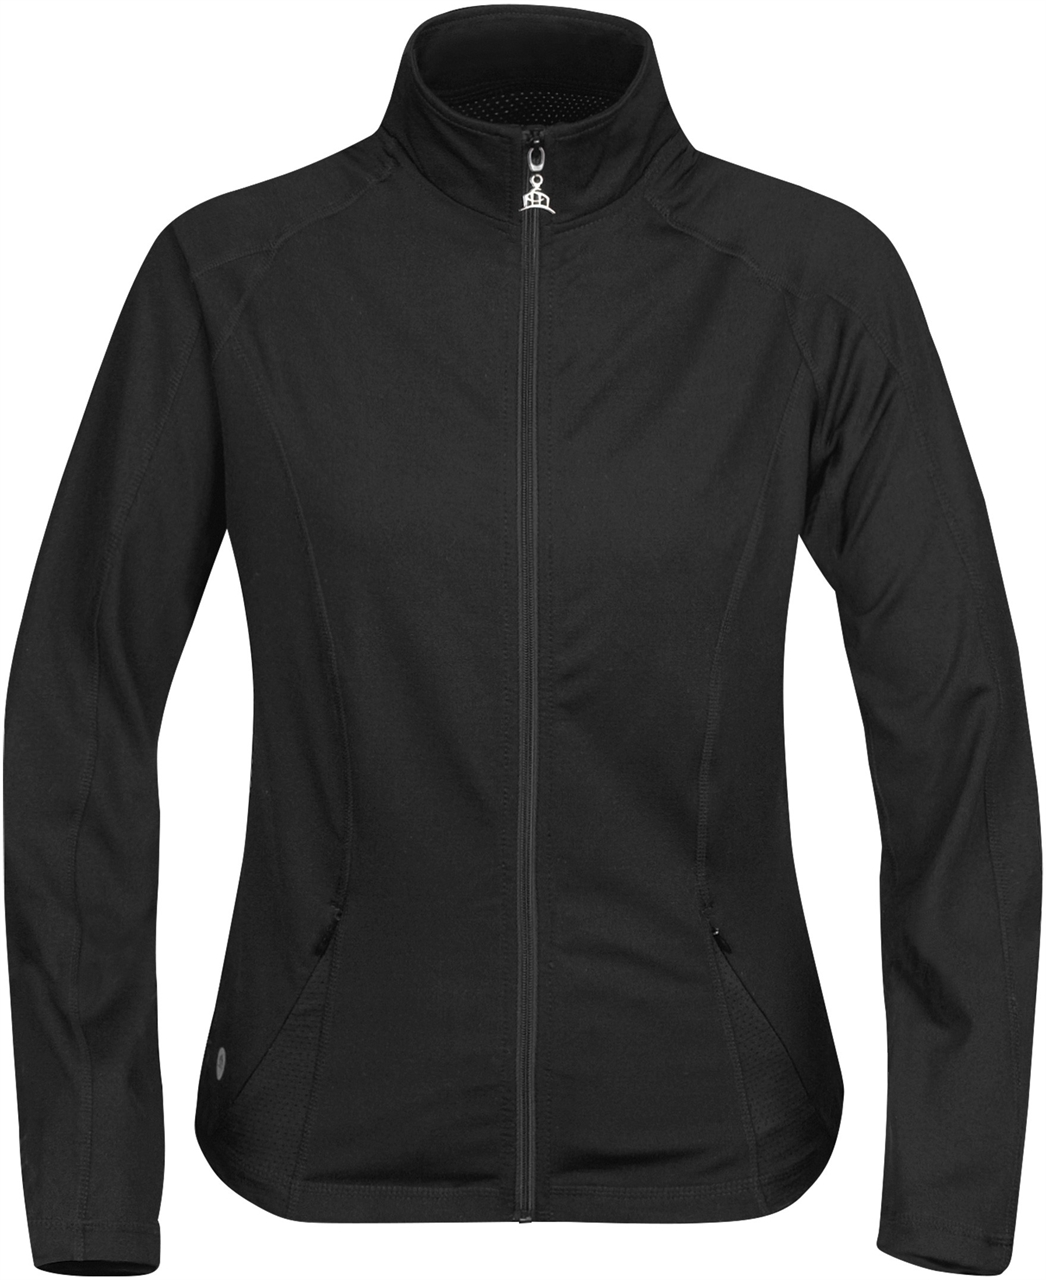 Picture of Stormtech Women's Flex Textured Jacket